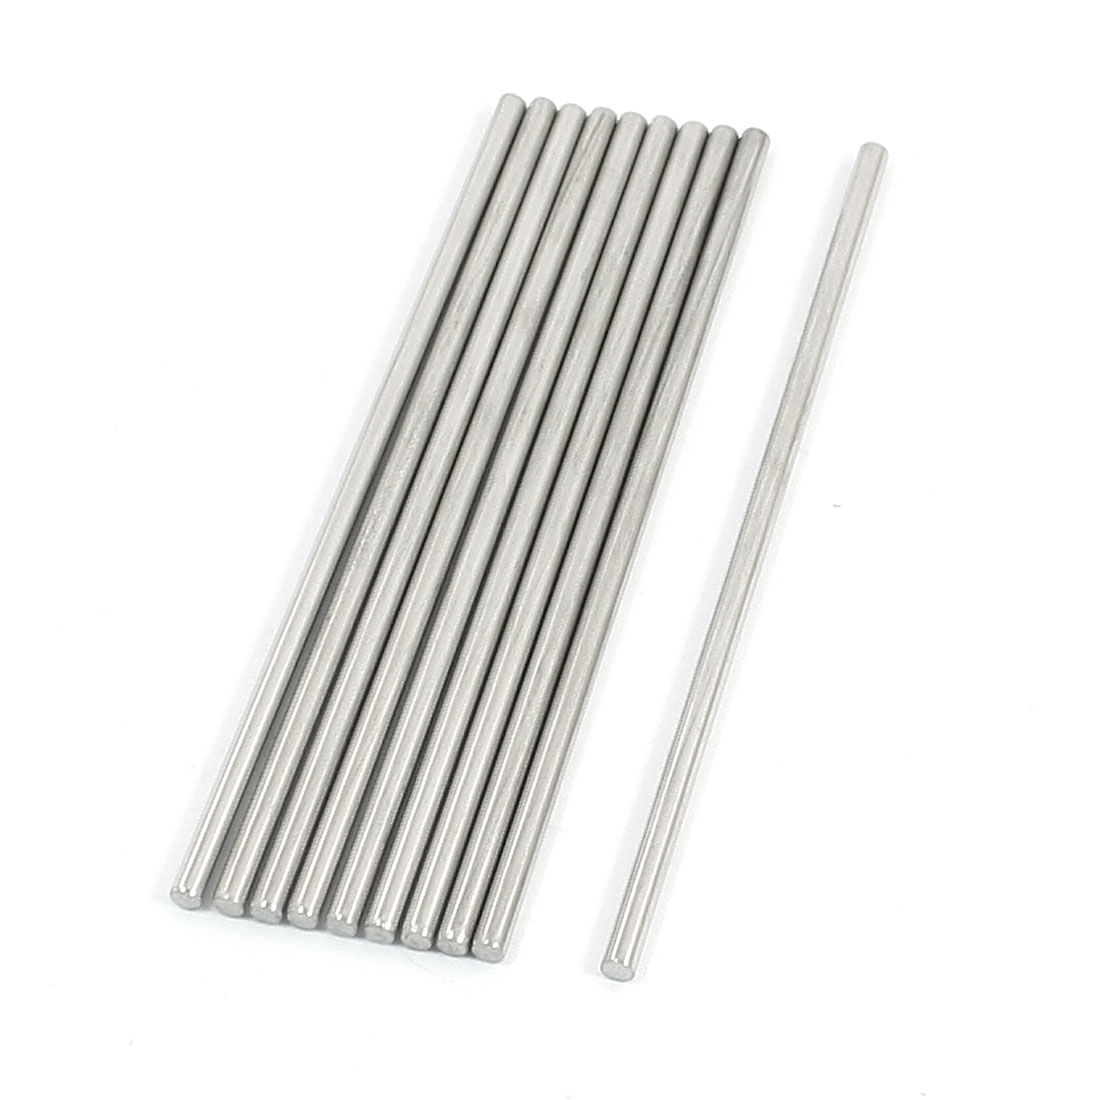 10Pcs Stainless Steel Machinery Parts Component Round Bar 80x2.5mm